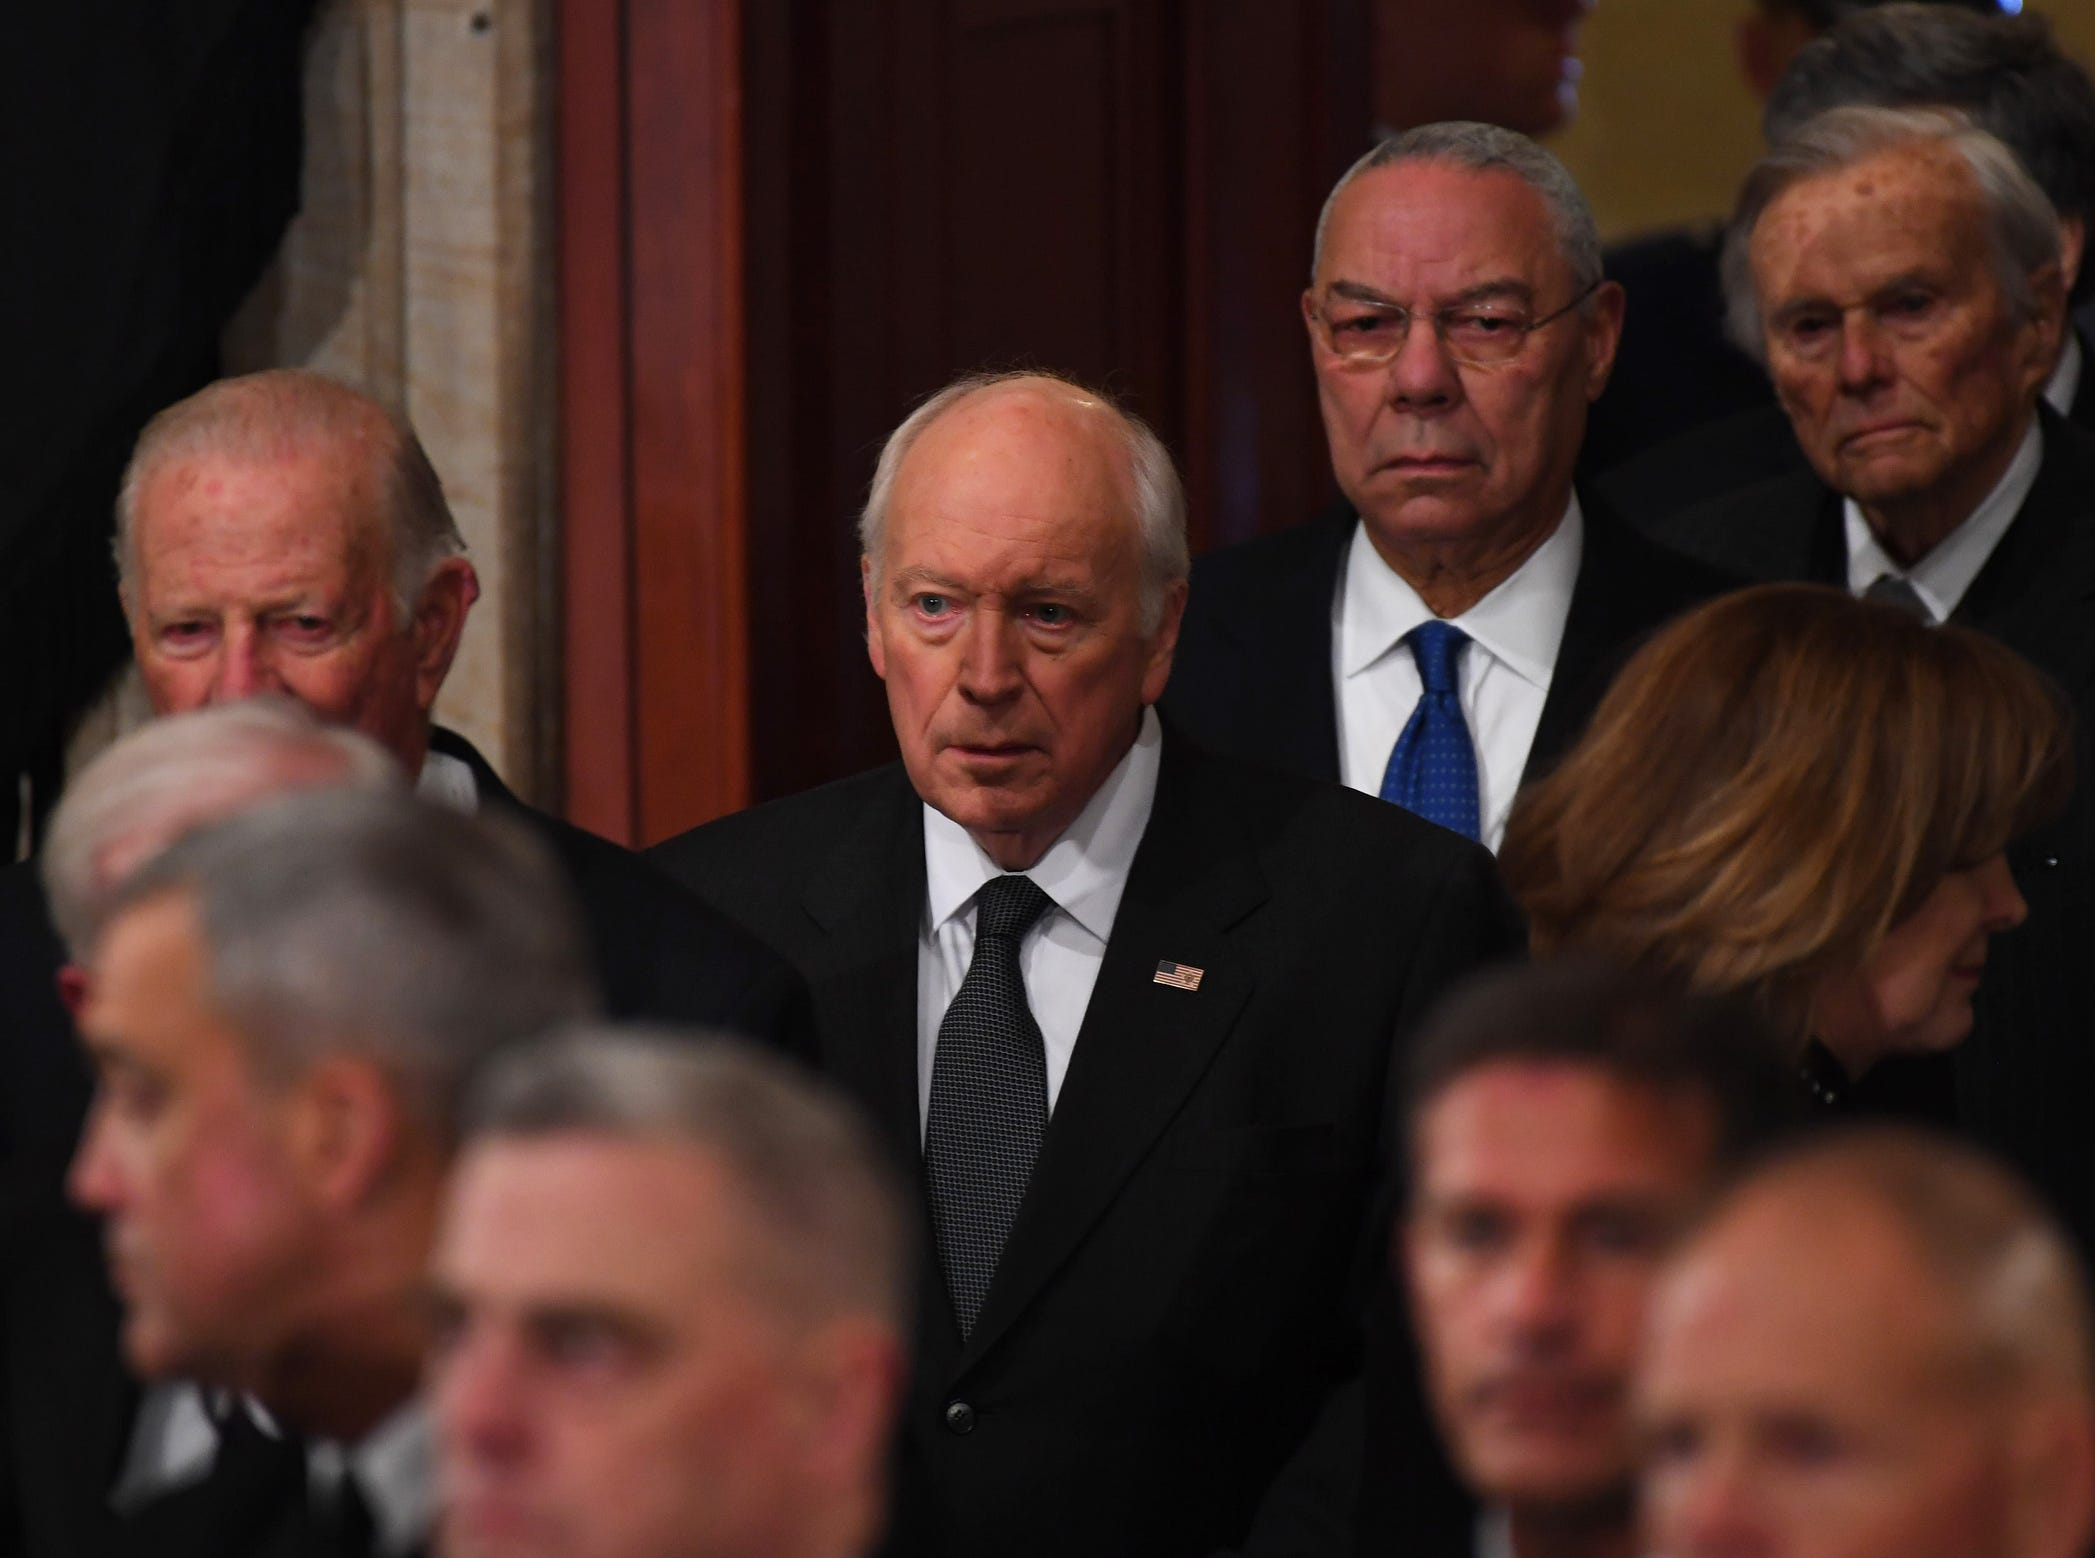 Former Secretary of State James Baker III, left, former Vice President Dick Cheney and former Secretary of State Colin Powell file in to pay their respects to former President George H.W. Bush.